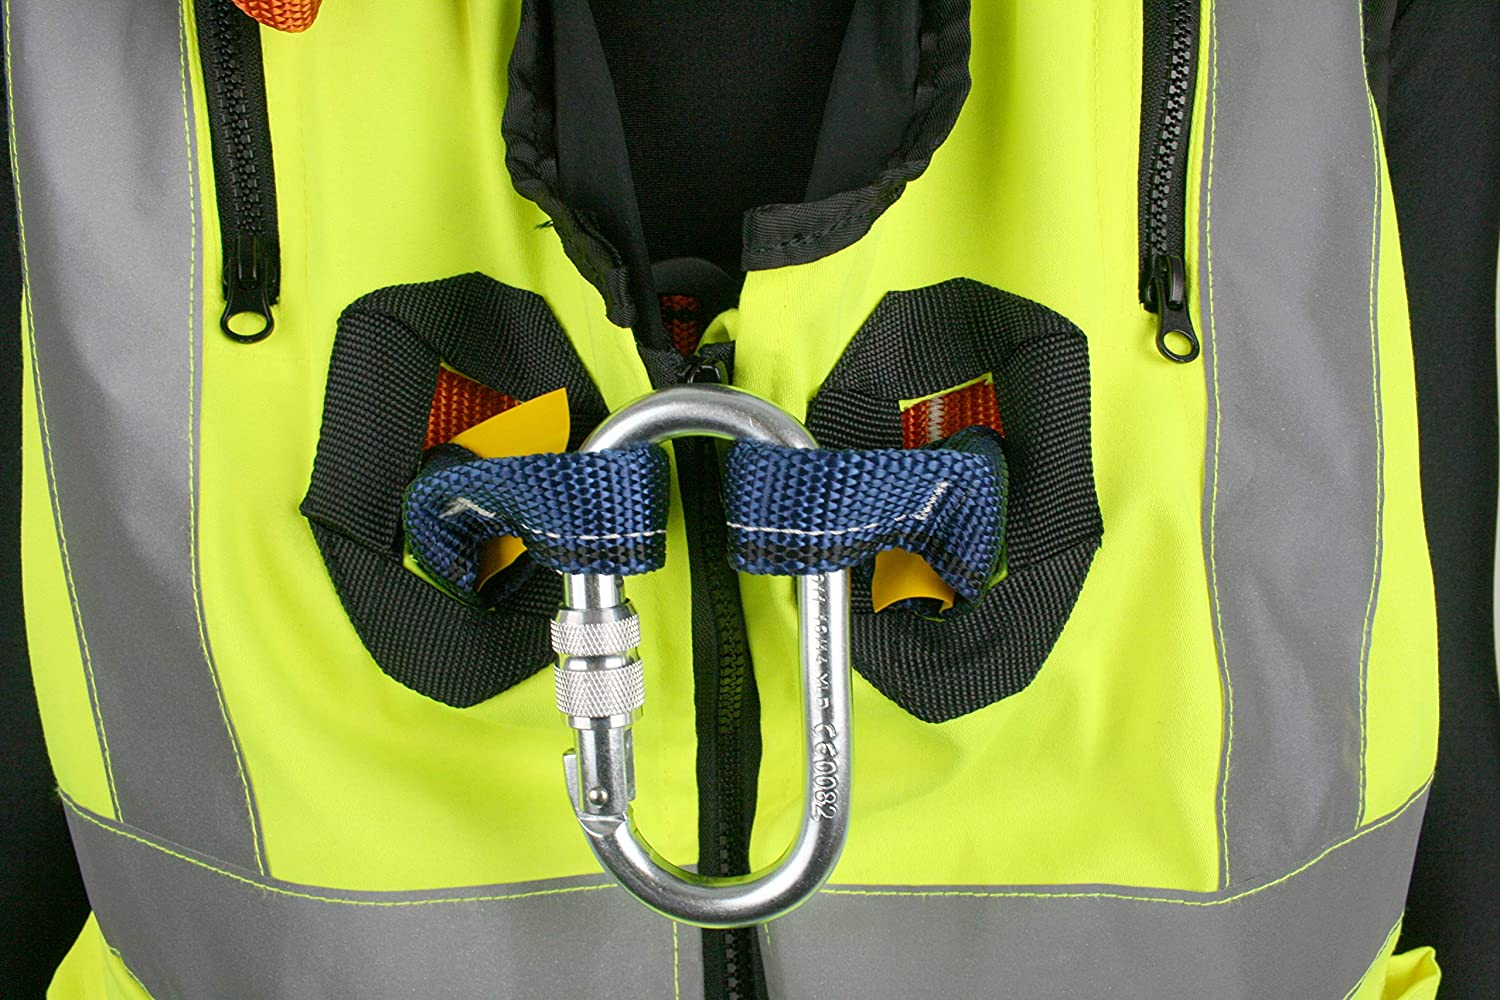 G-Force Yellow Hi Viz Elasticated Full Body Height Safety Fall Arrest Harness Jacket With Quick Release Buckles M-XL